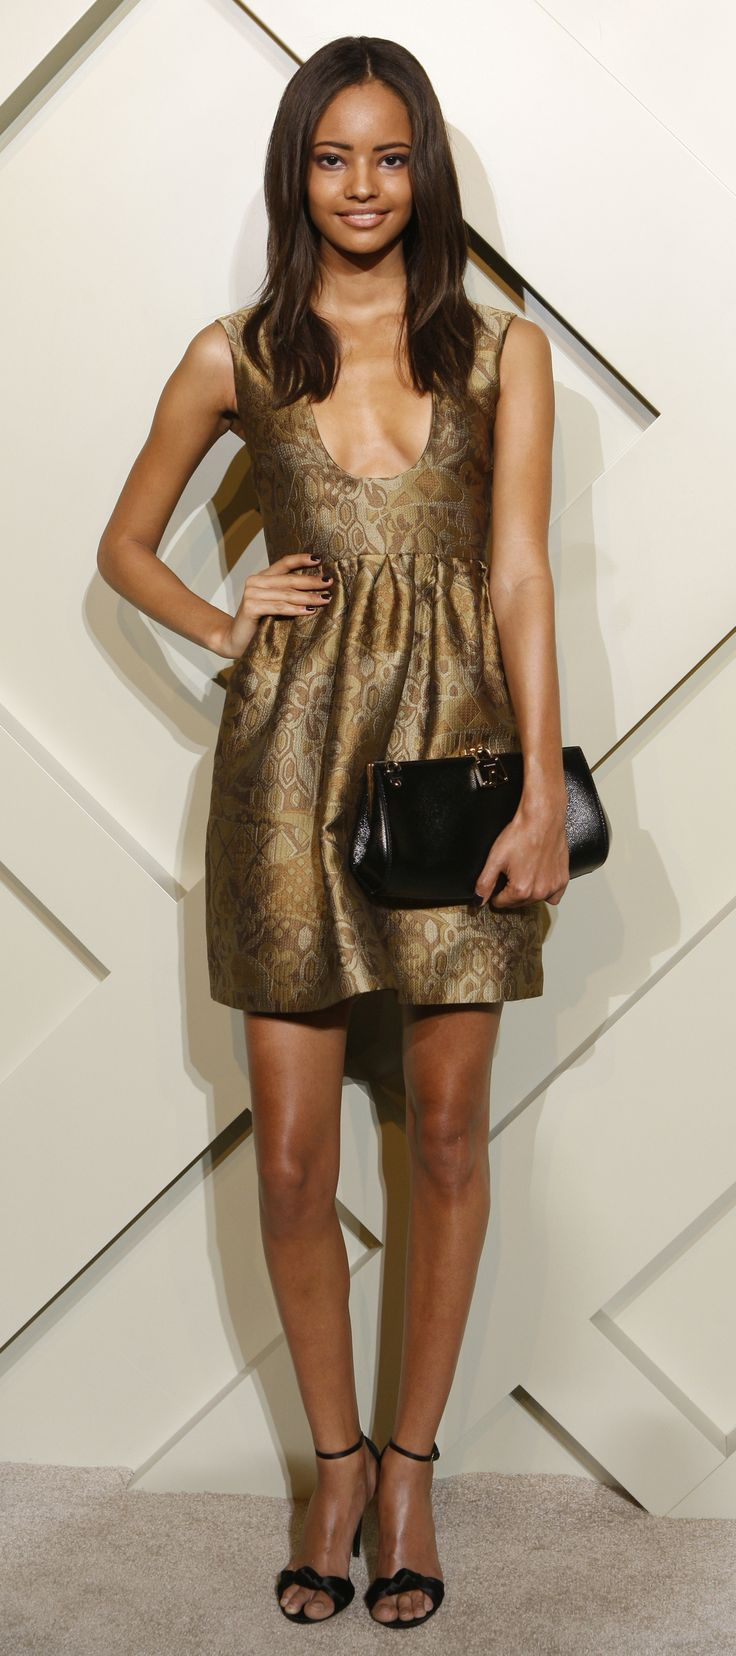 British model Malaika Firth wearing a Burberry dress to attend Thursday's Burberry celebration in Shanghai